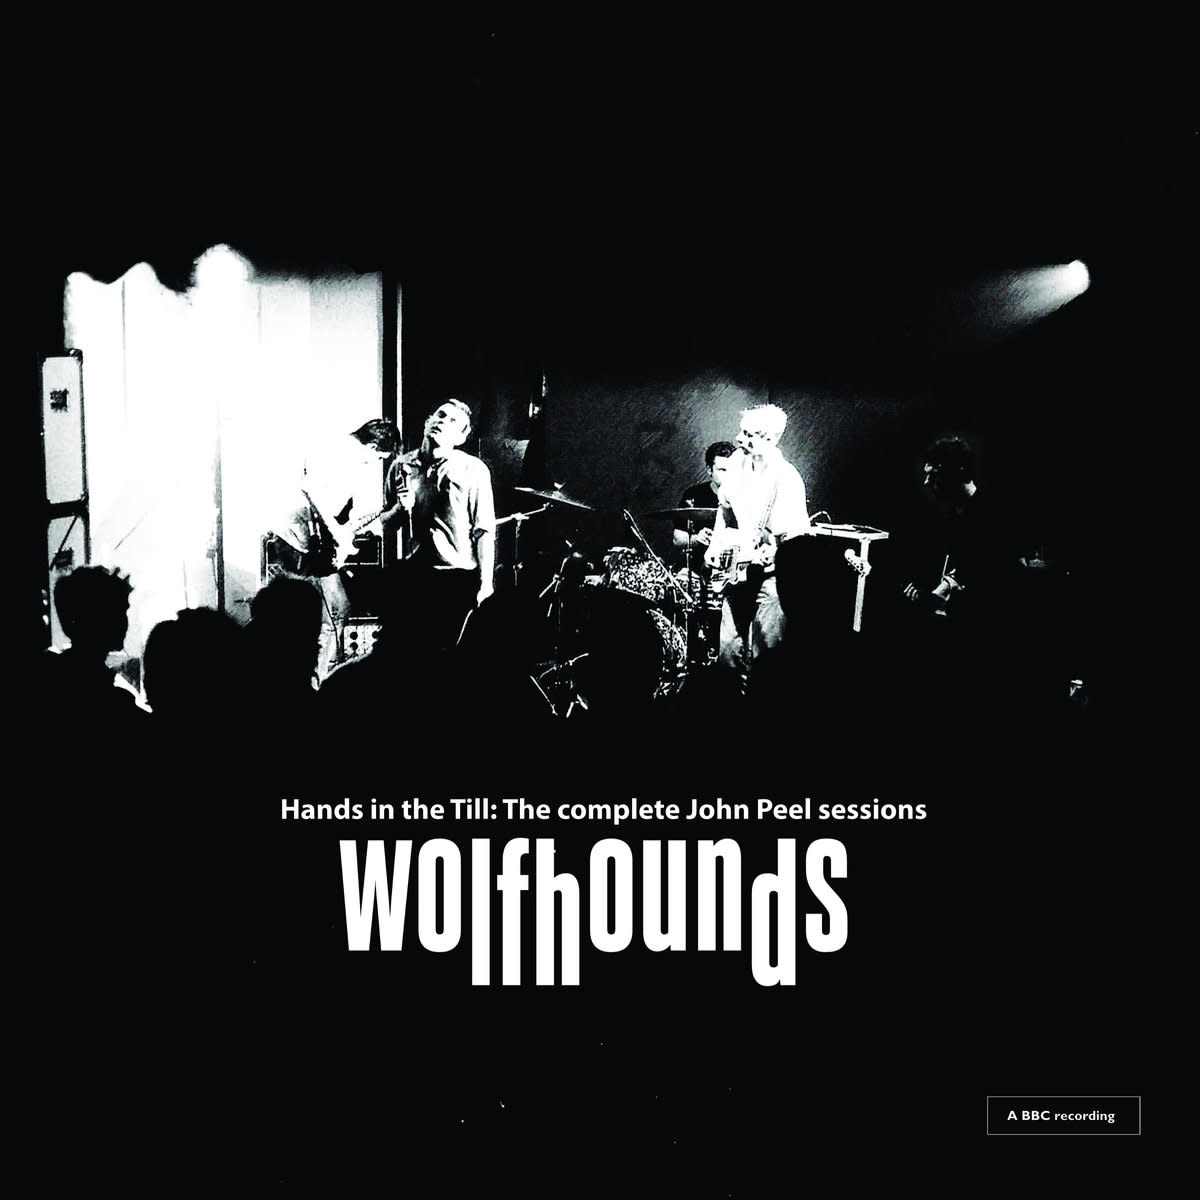 A Turntable Friend The Wolfhounds - Hands In The Till: The Complete John Peel Sessions